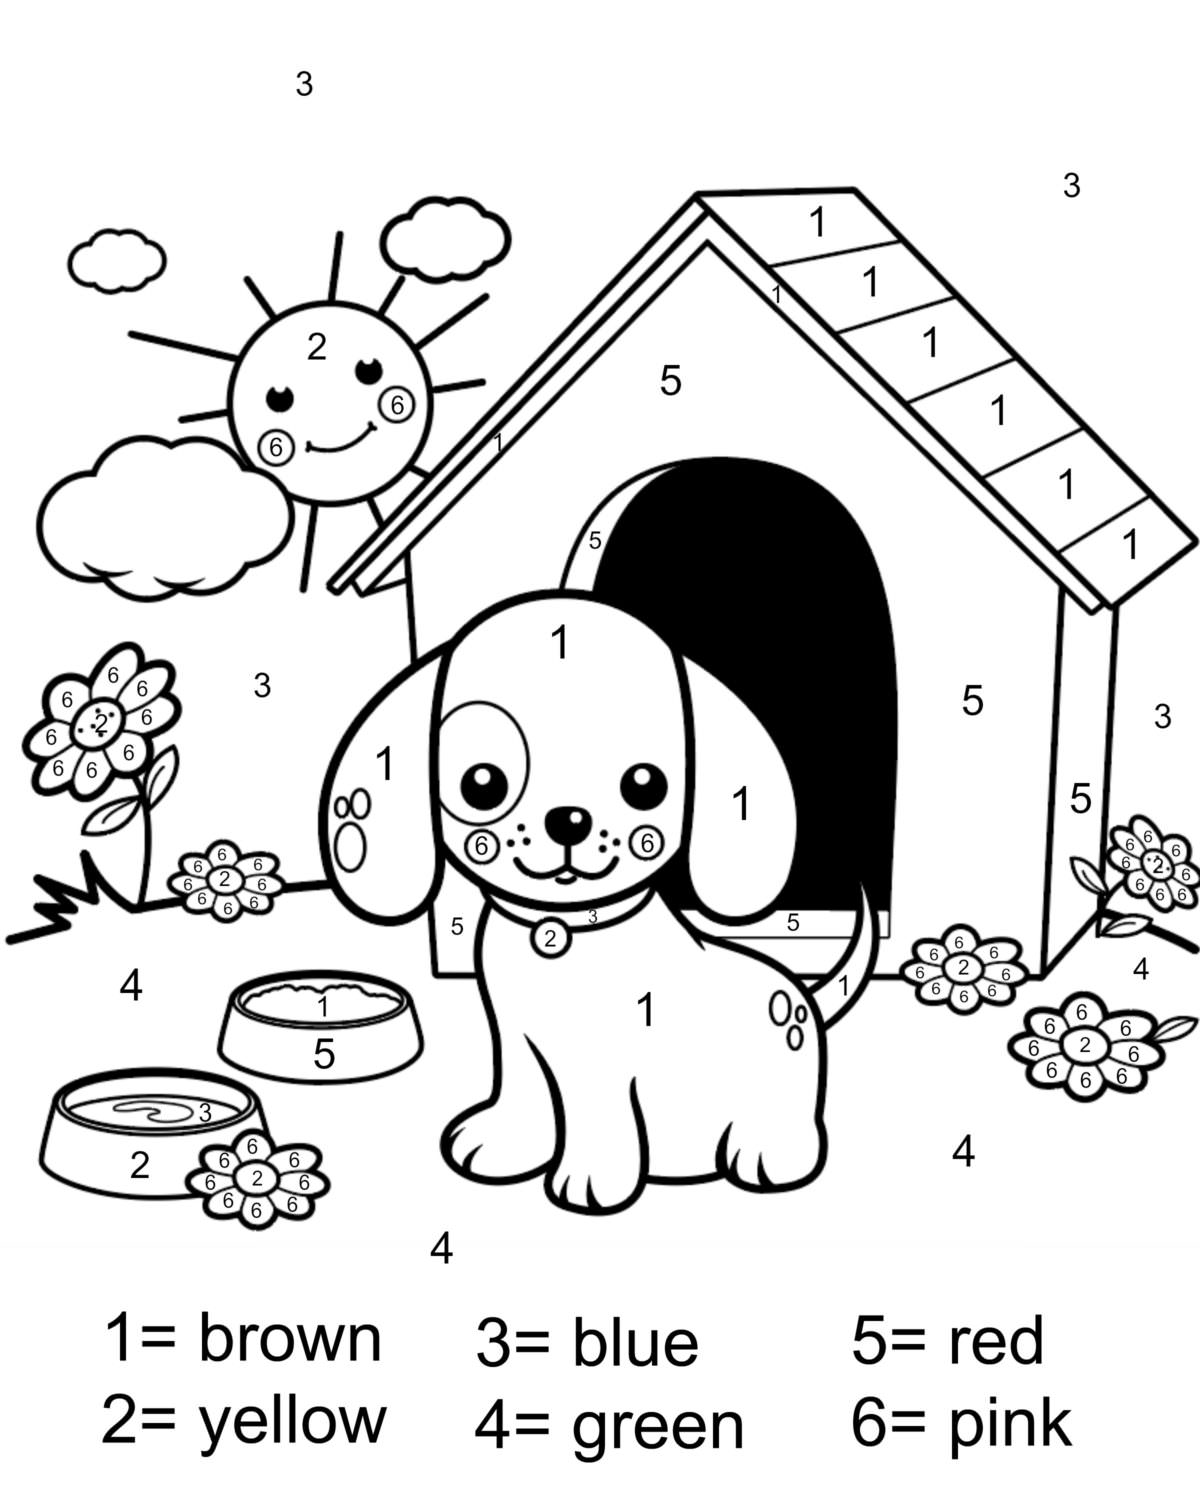 coloring sheets with numbers free printable color by number coloring pages best coloring numbers sheets with